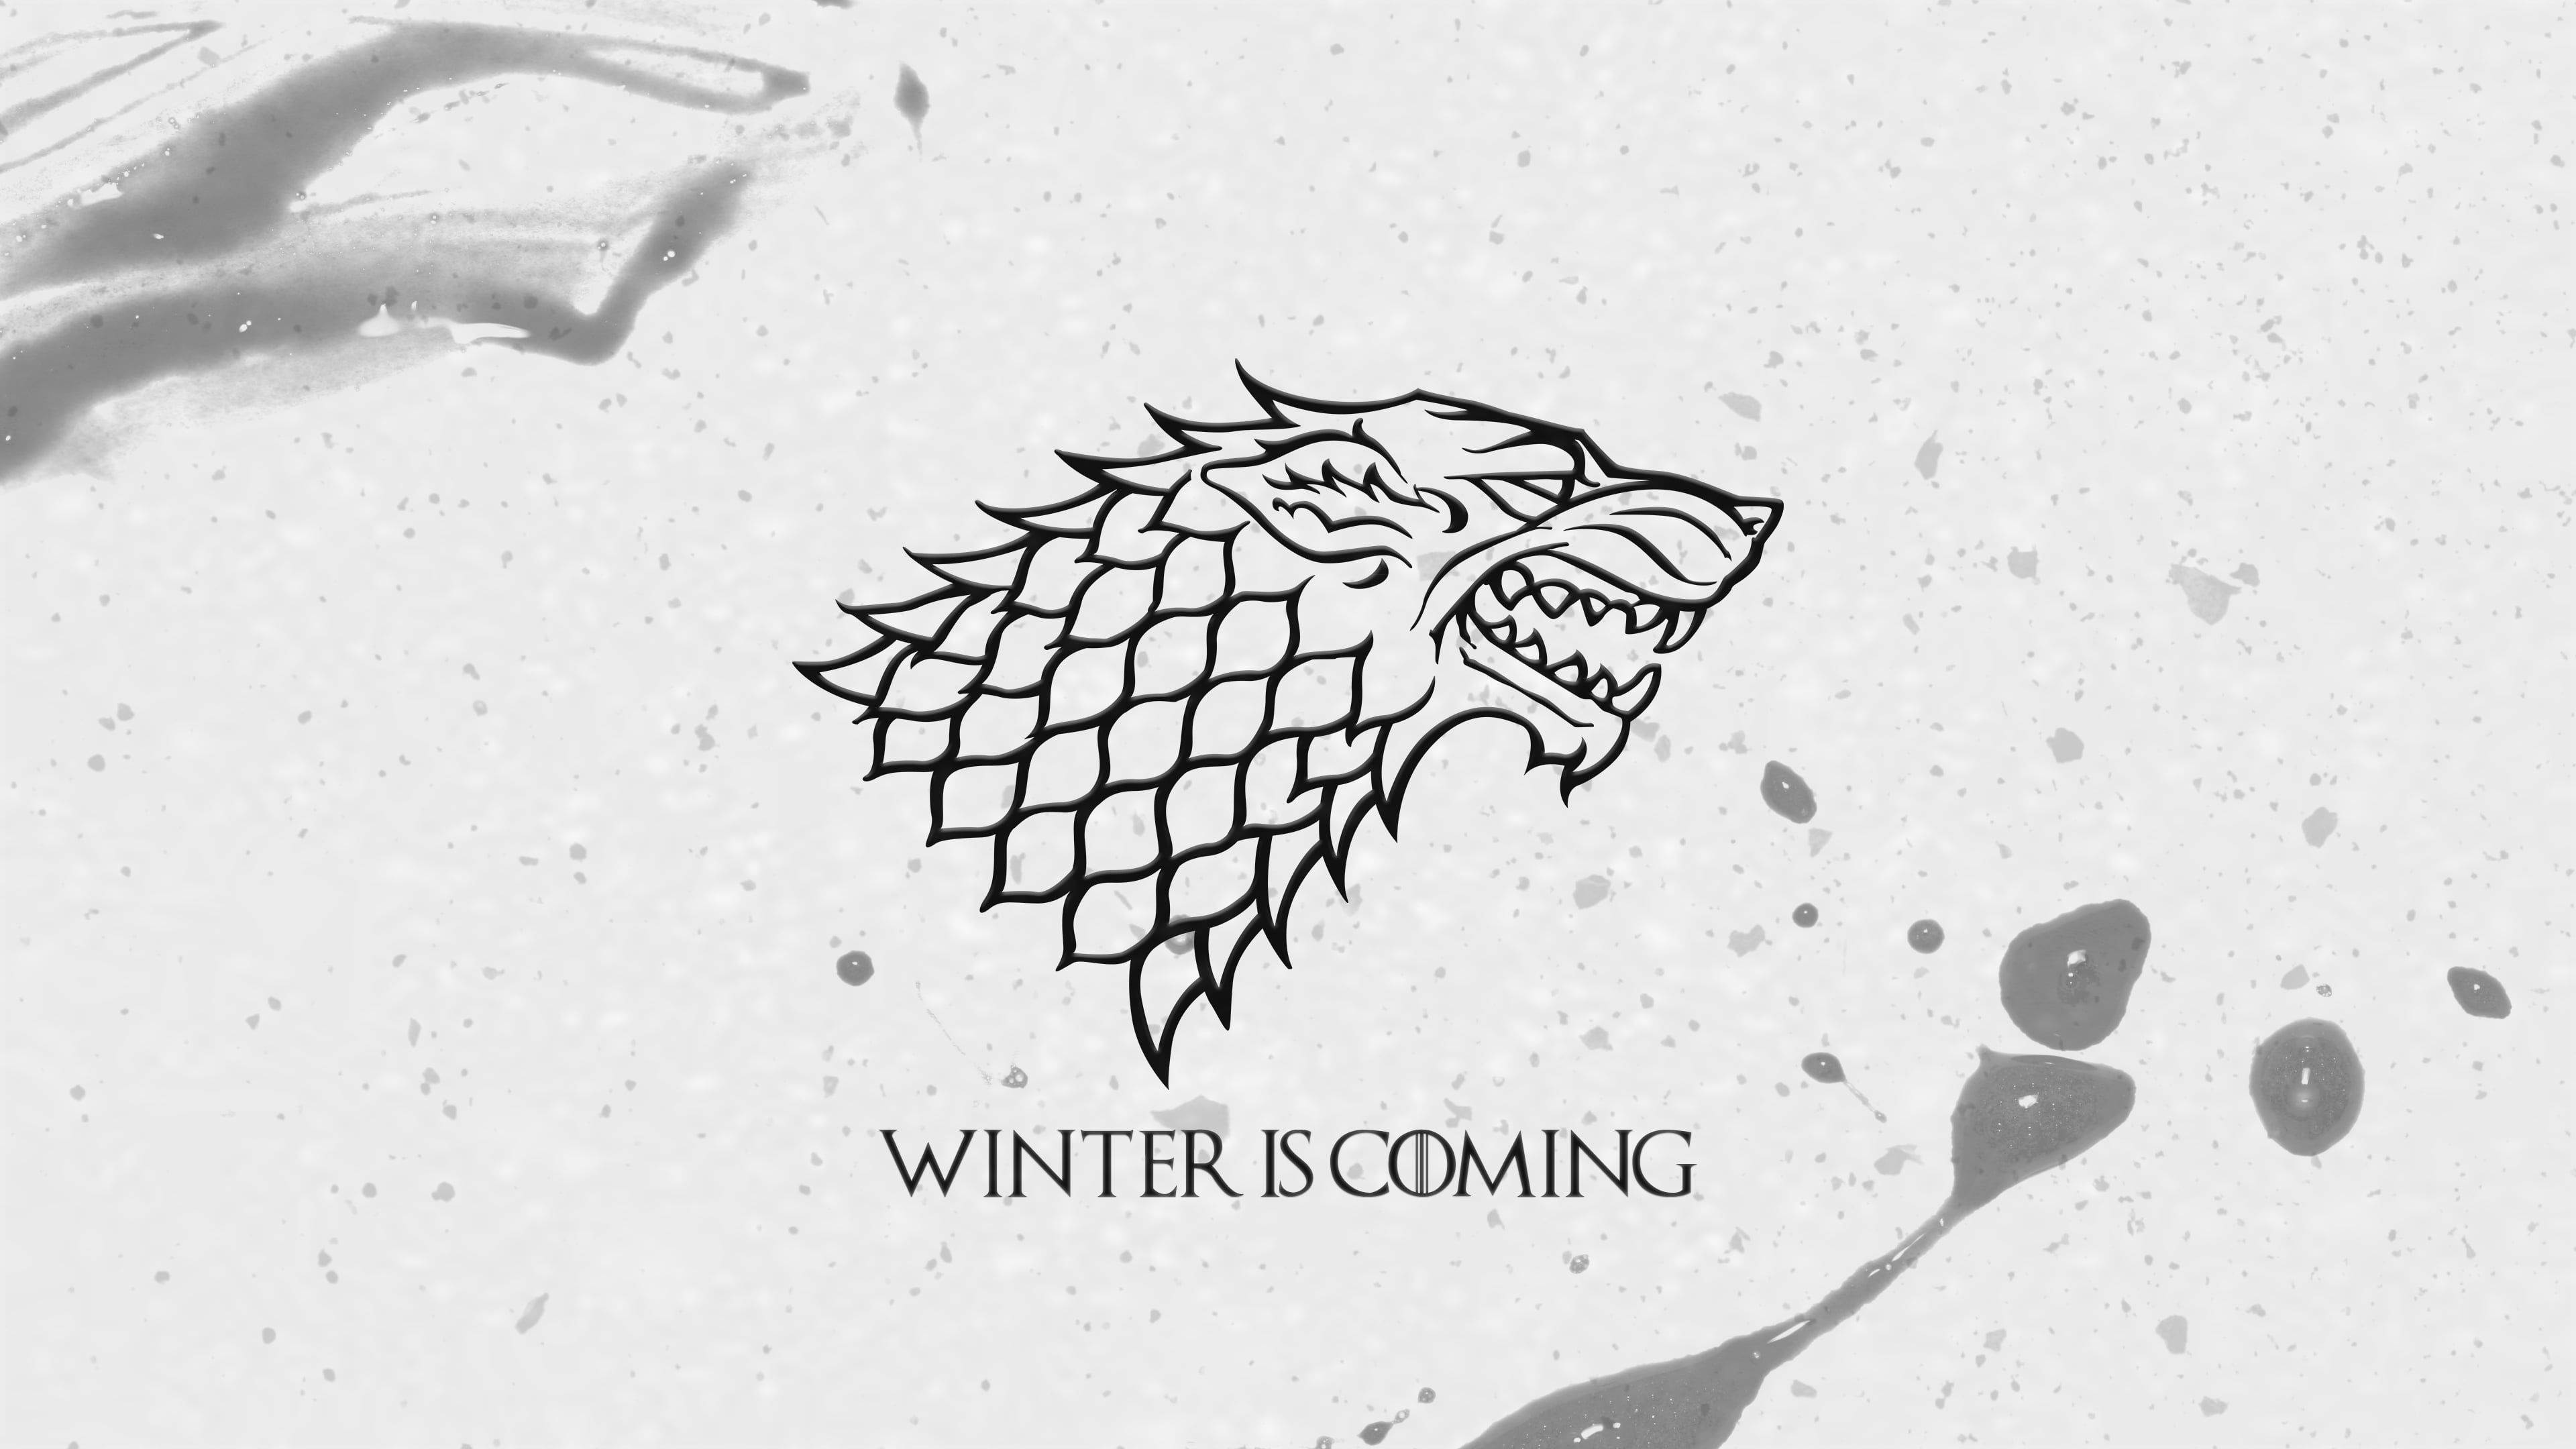 Winter Is Coming Logo Game Of Thrones A Song Of Ice And Fire Jon Snow House Stark Winte Winter Is Coming Wallpaper Winter Is Coming Meme Winter Is Coming Quote